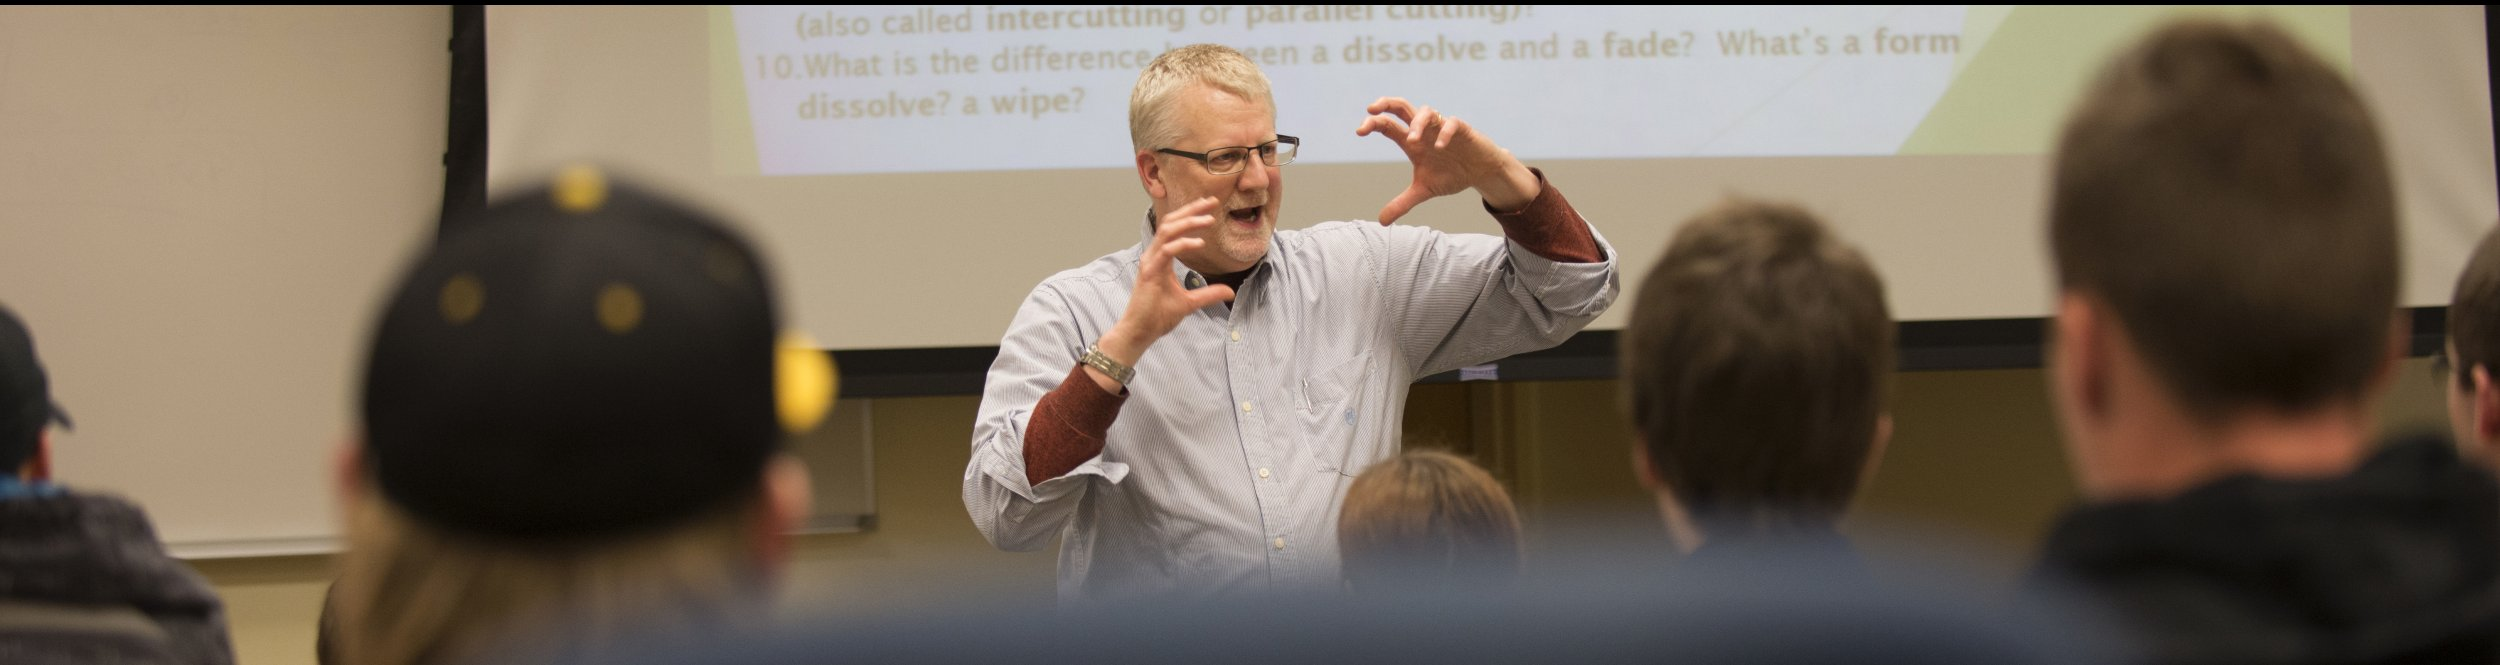 A professor gestures with his hands as he talks.